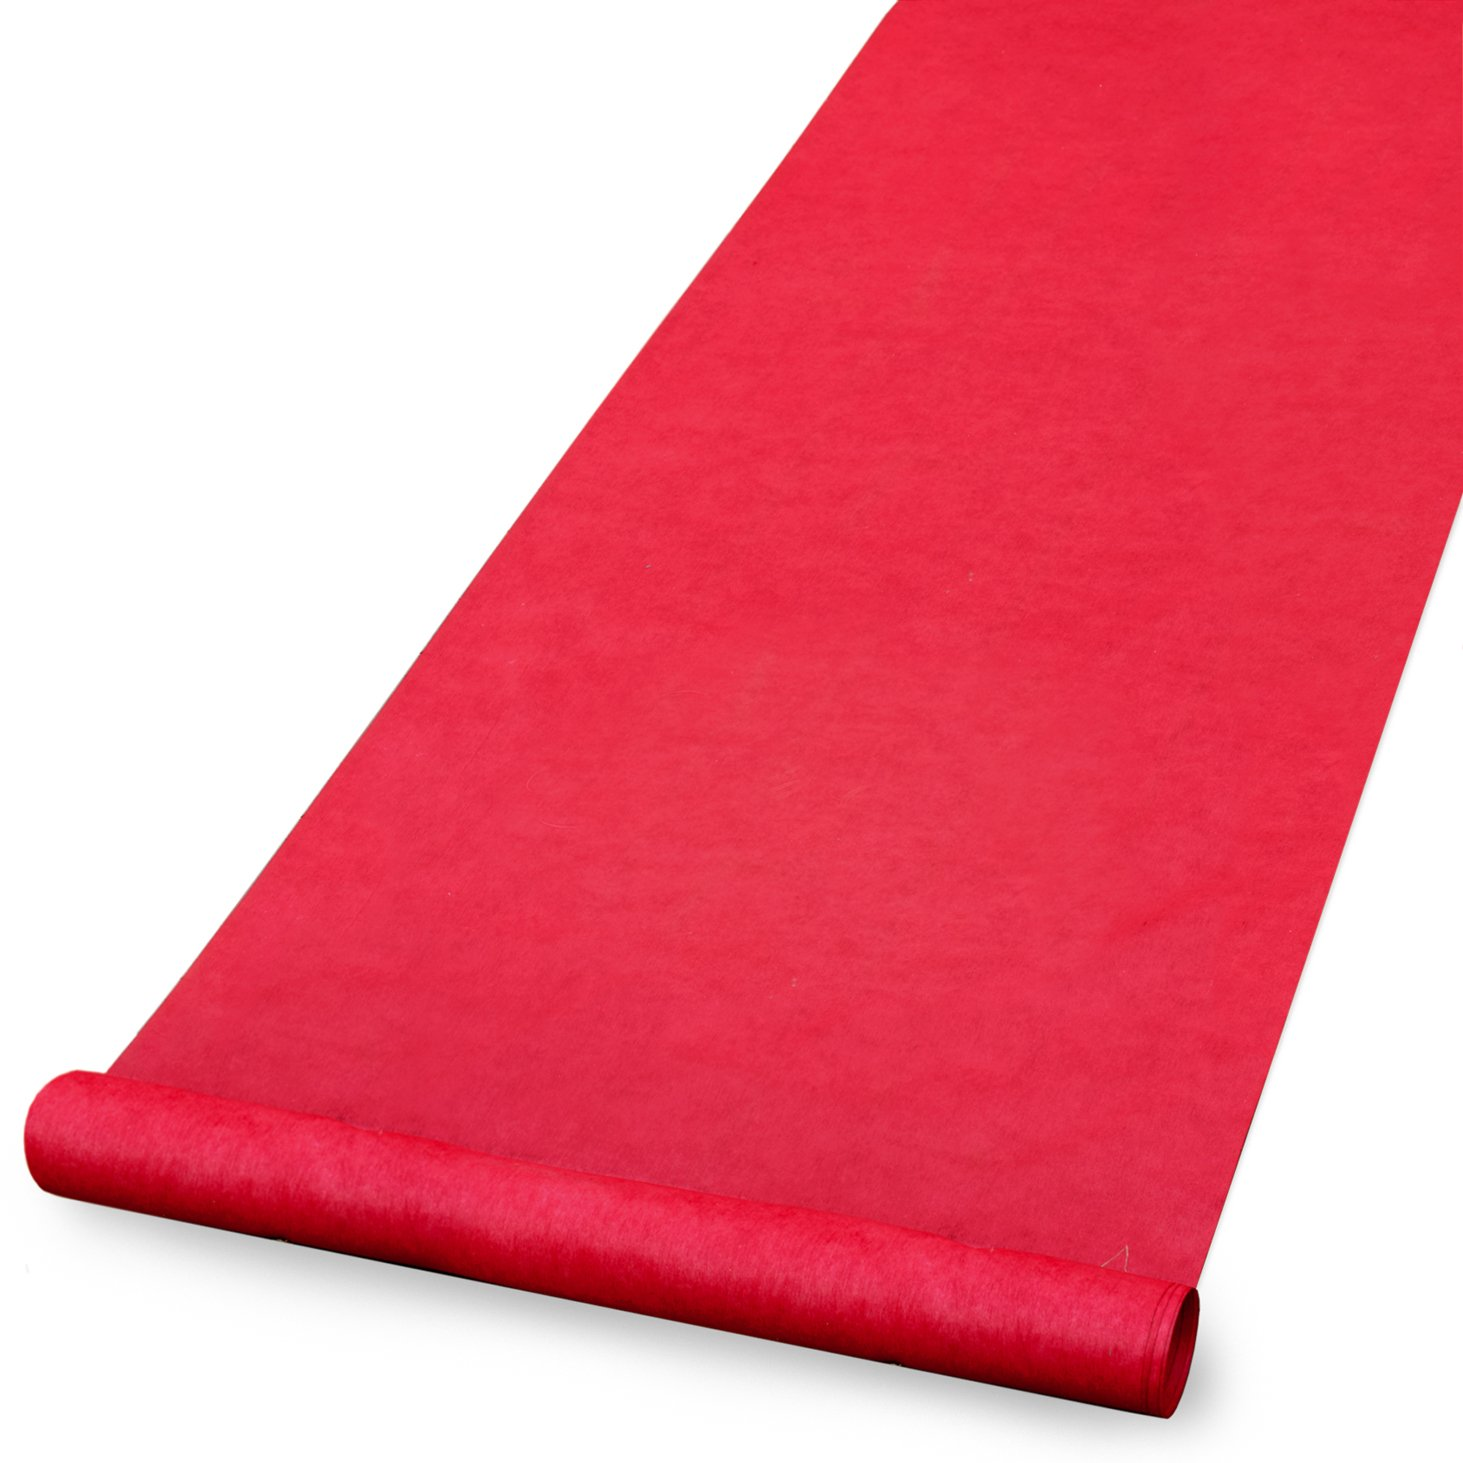 Hortense B. Hewitt Wedding Accessories Red Aisle Runner 30056